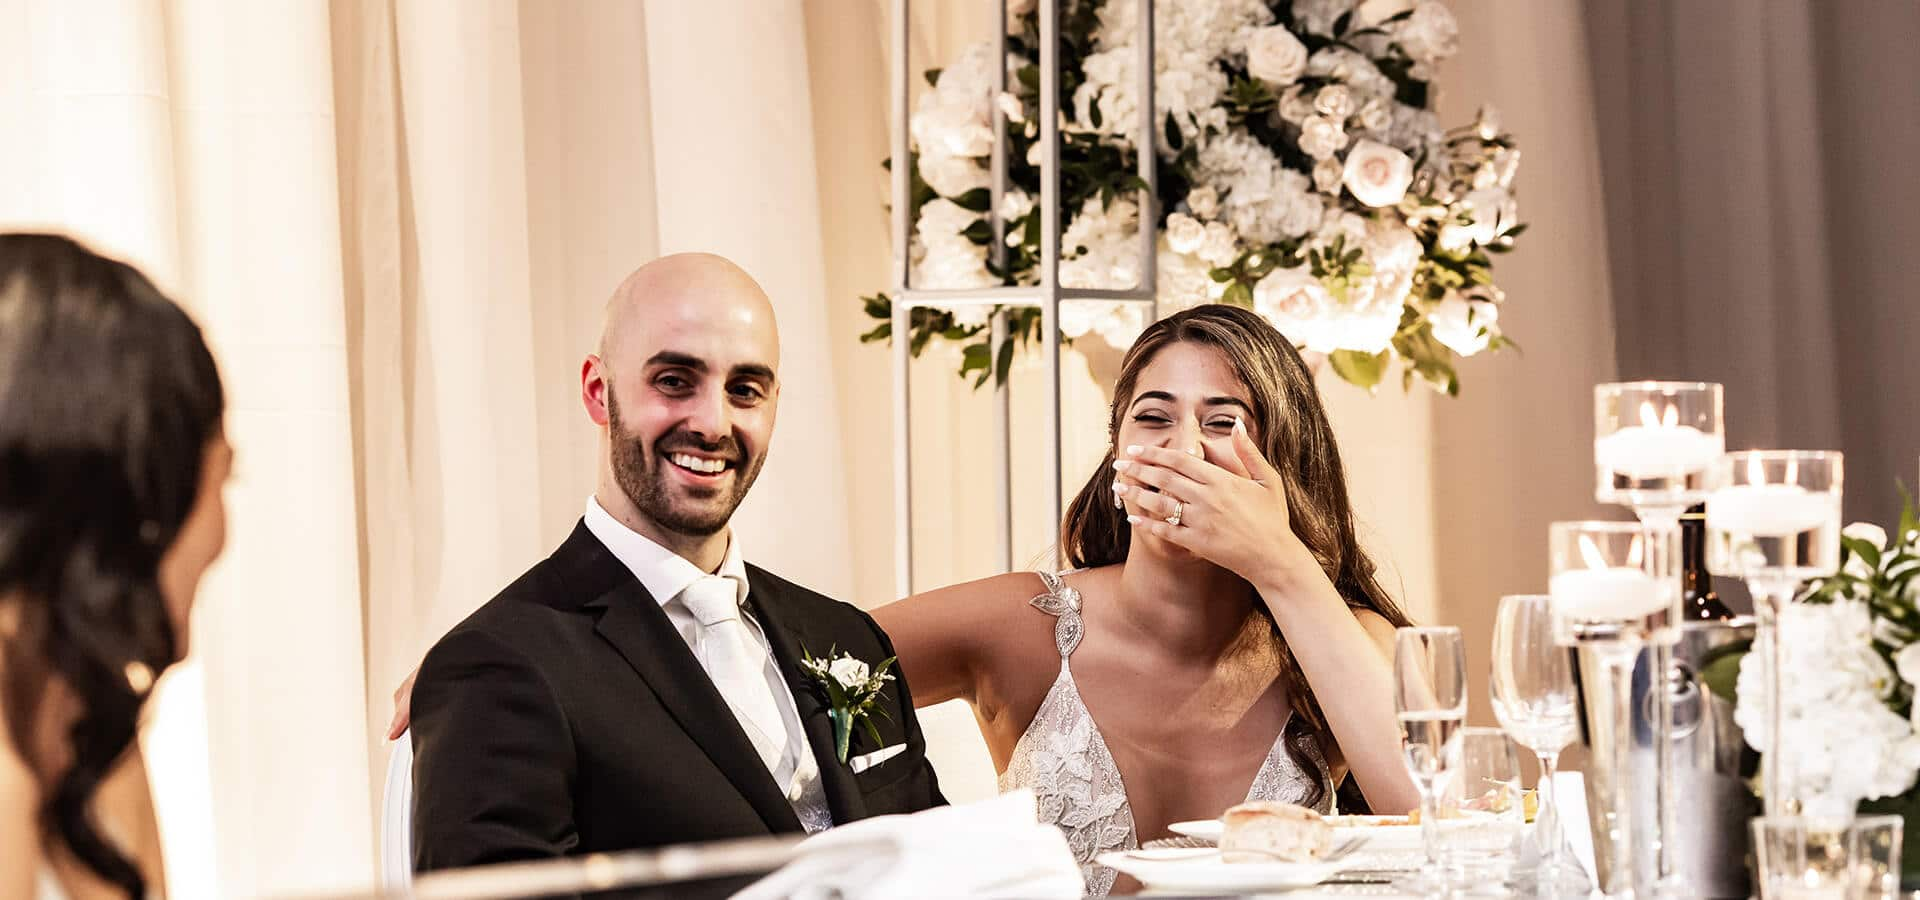 Hero image for 9 Weird Things No One Tells you About Your Wedding Day